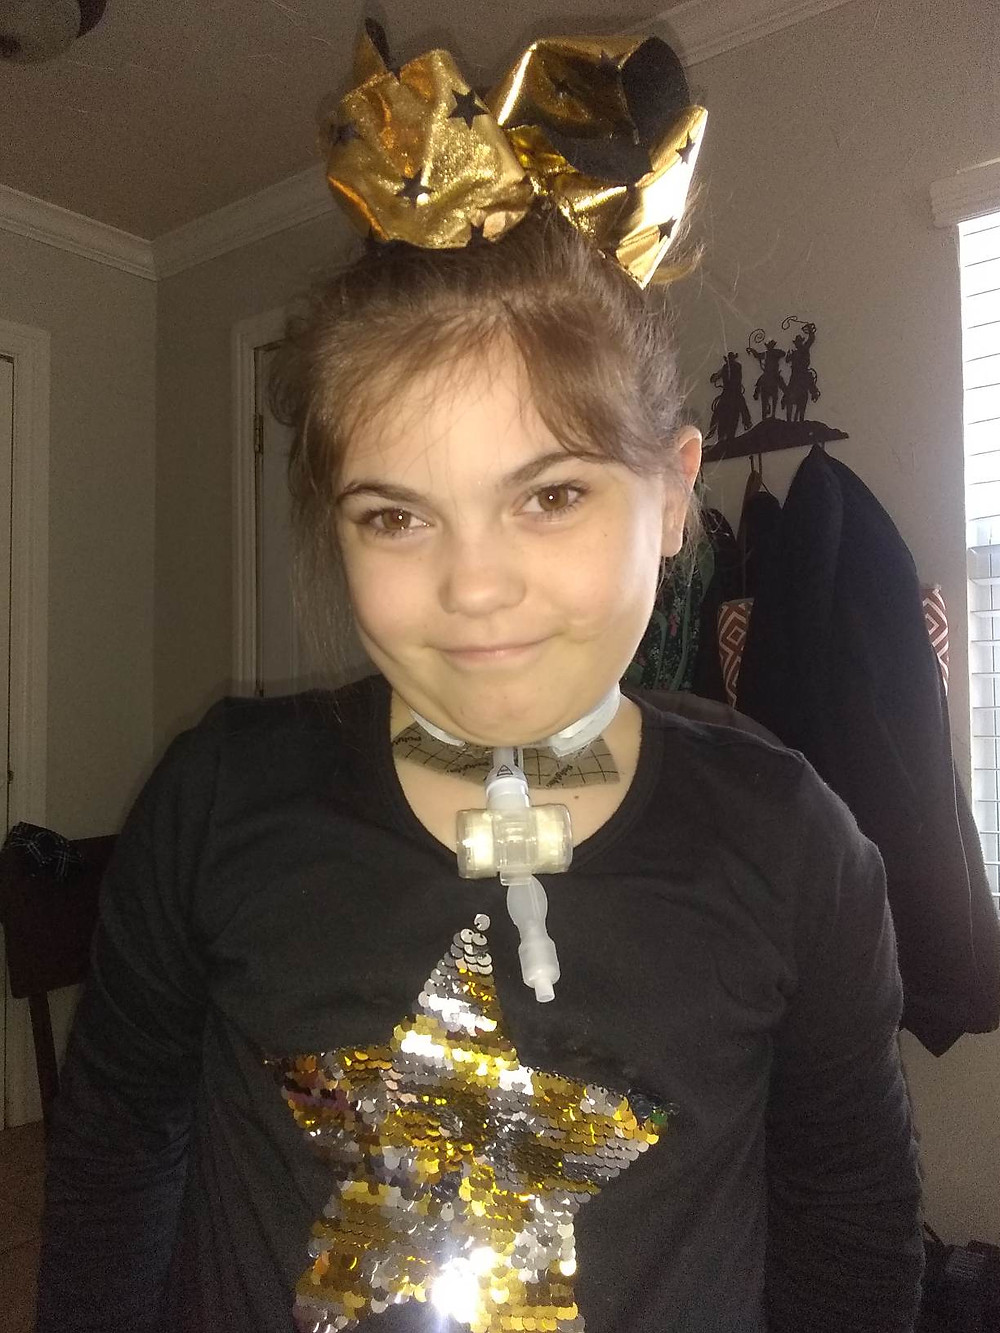 Brylie is trach dependent because of her diagnosis of Leigh's Disease and M.E.L.A.S.